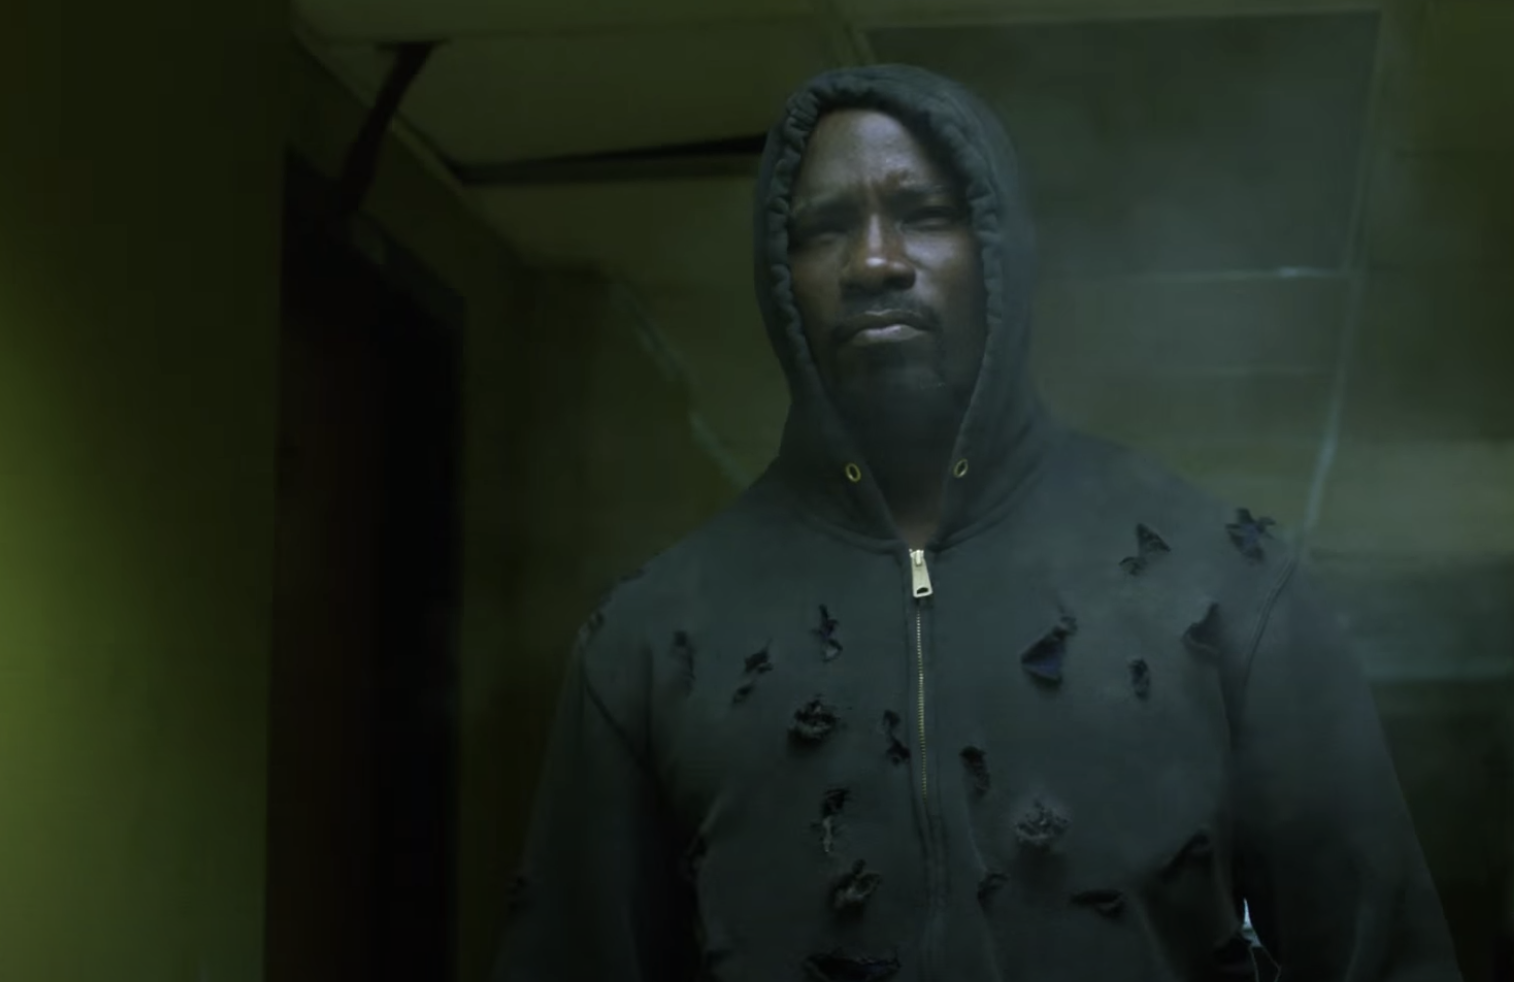 Mike Colter as Luke Cage, unharmed by bullets, on Luke Cage